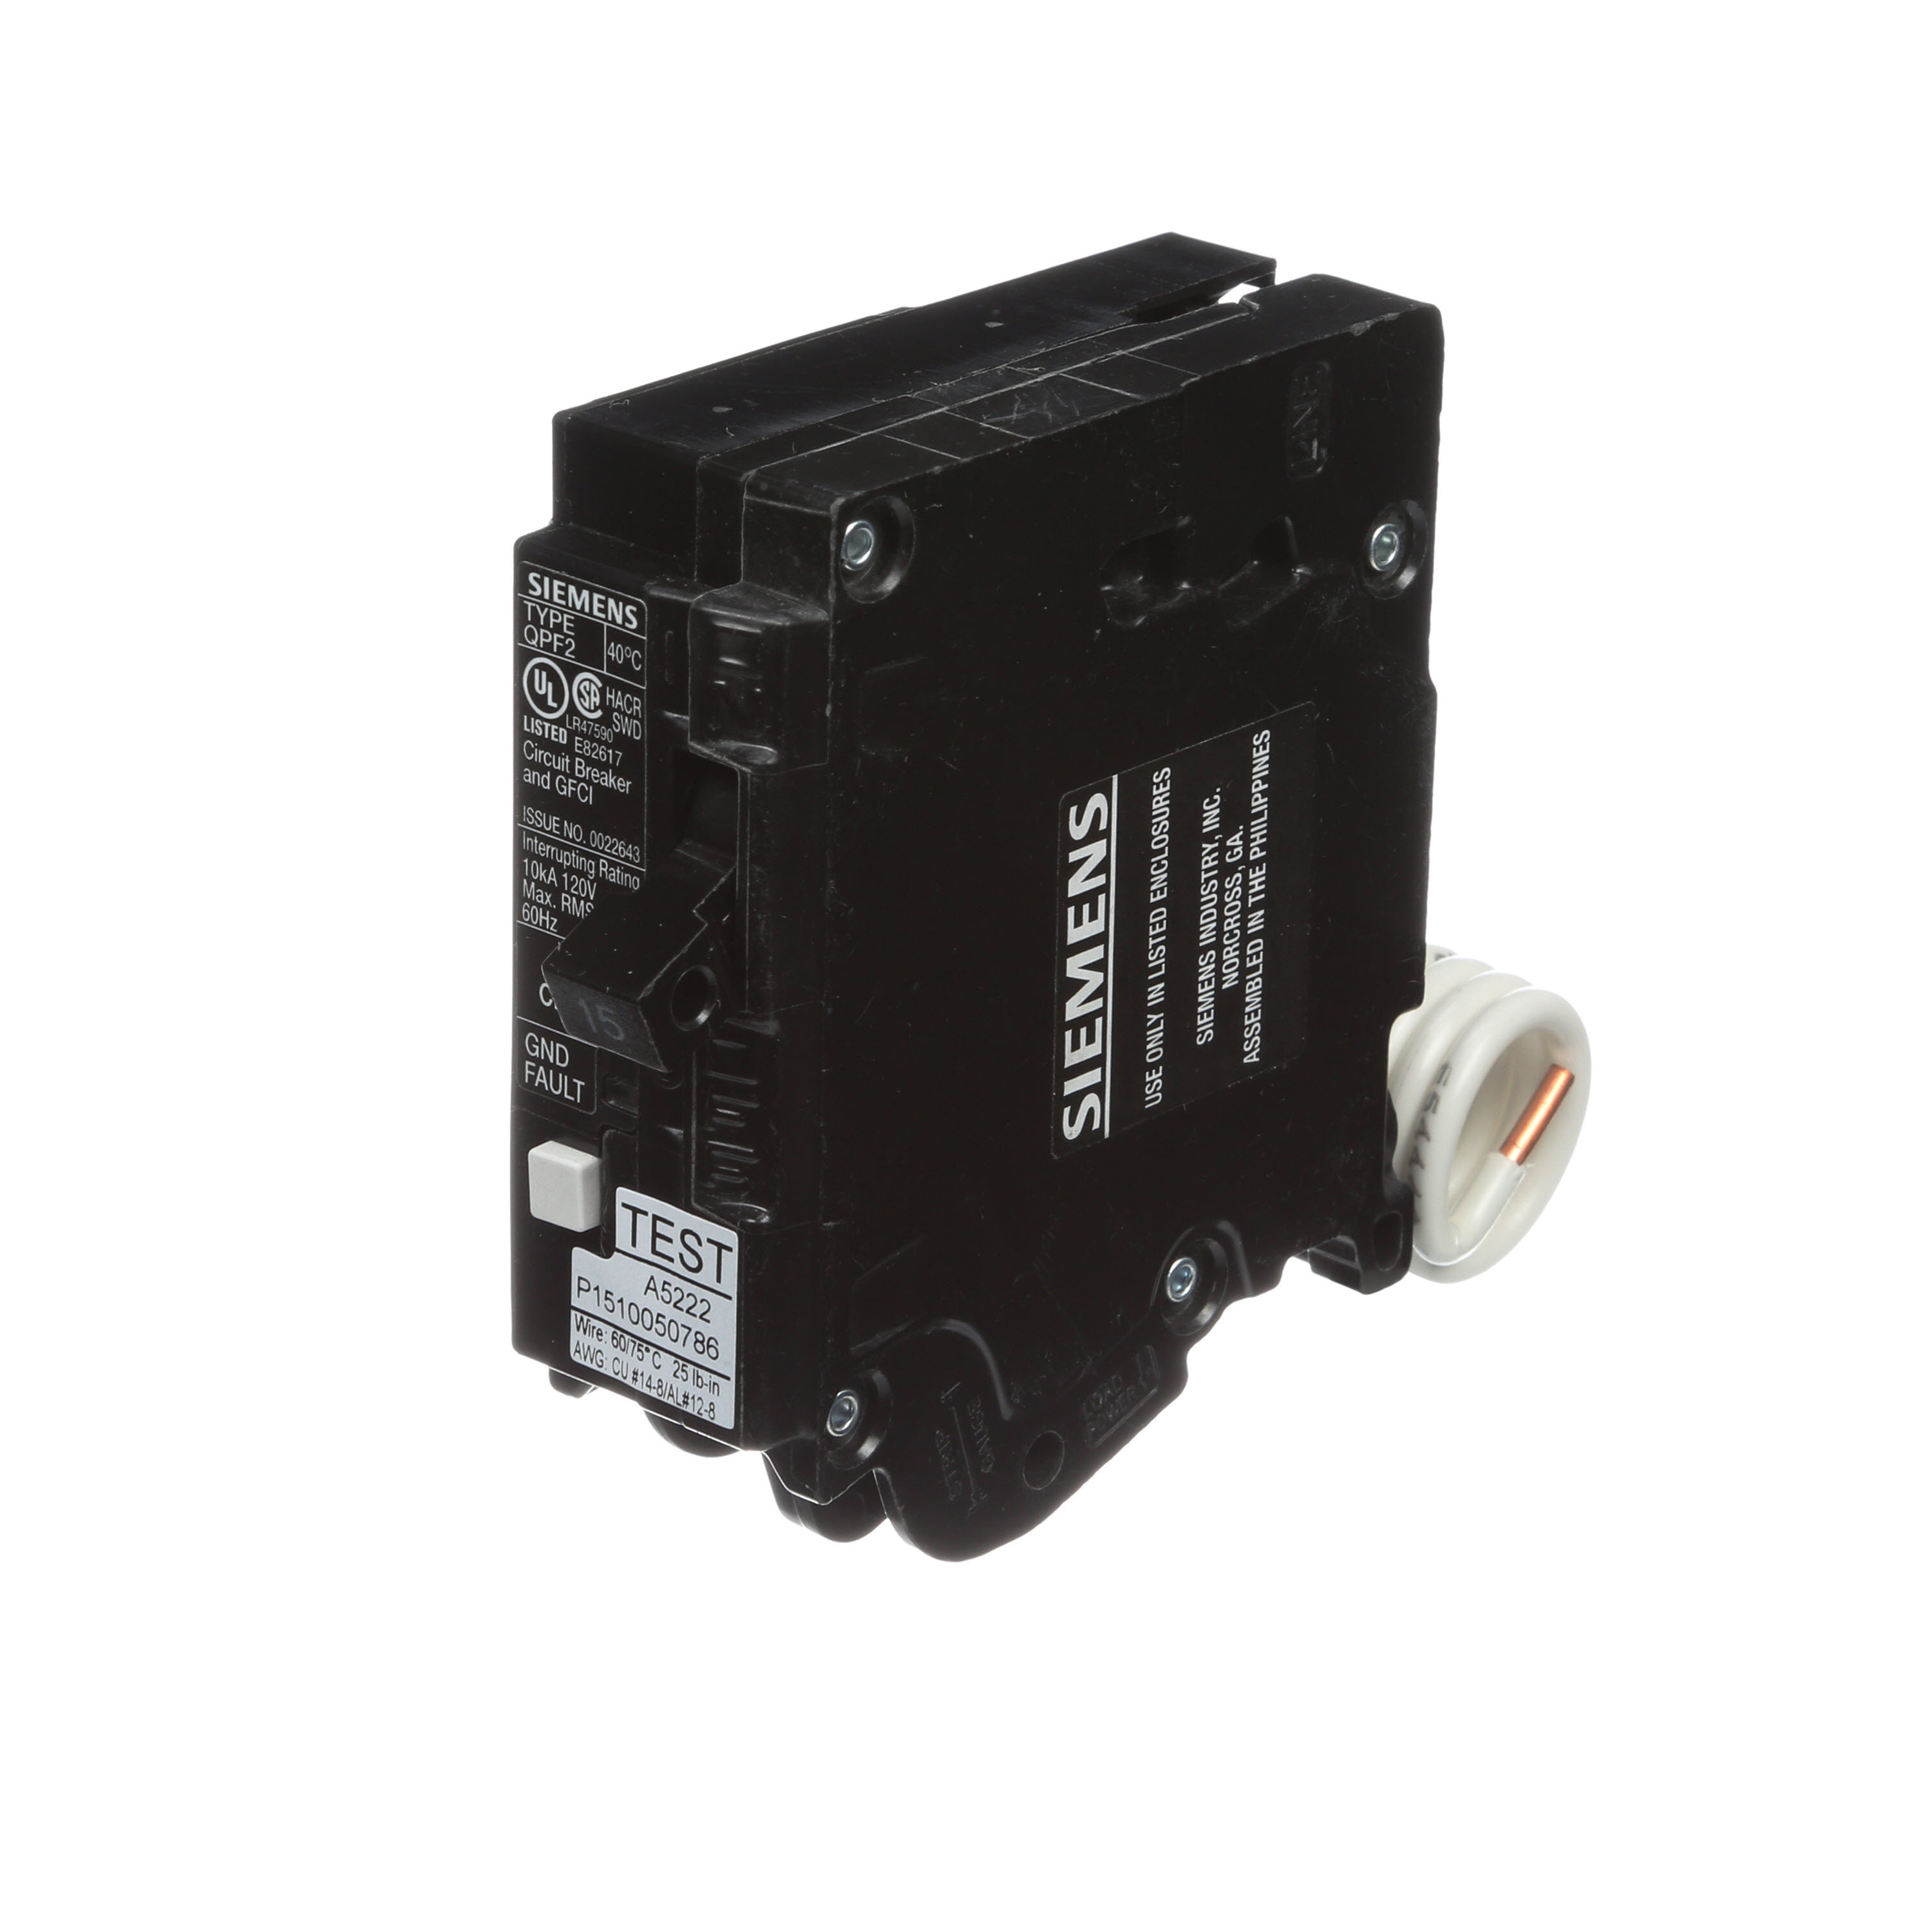 Circuit Protection Devices Siemens Load Center Breakers Type Electrical Wiring Materials Philippines Qf115a